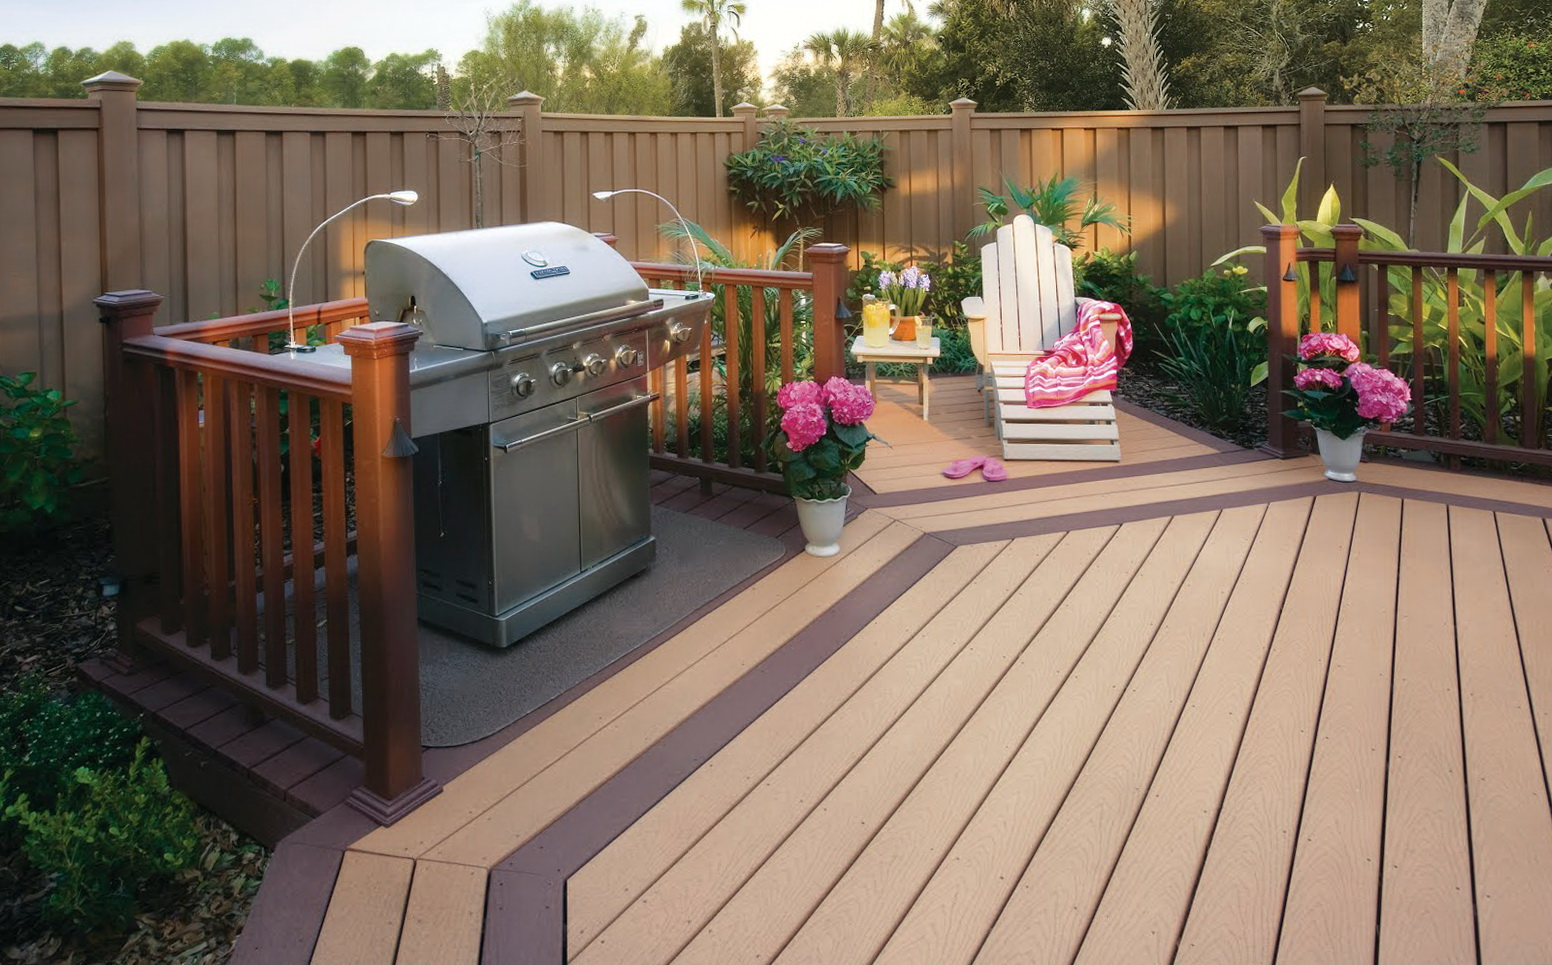 Lowes composite decking reviews home design ideas for Composite deck material reviews